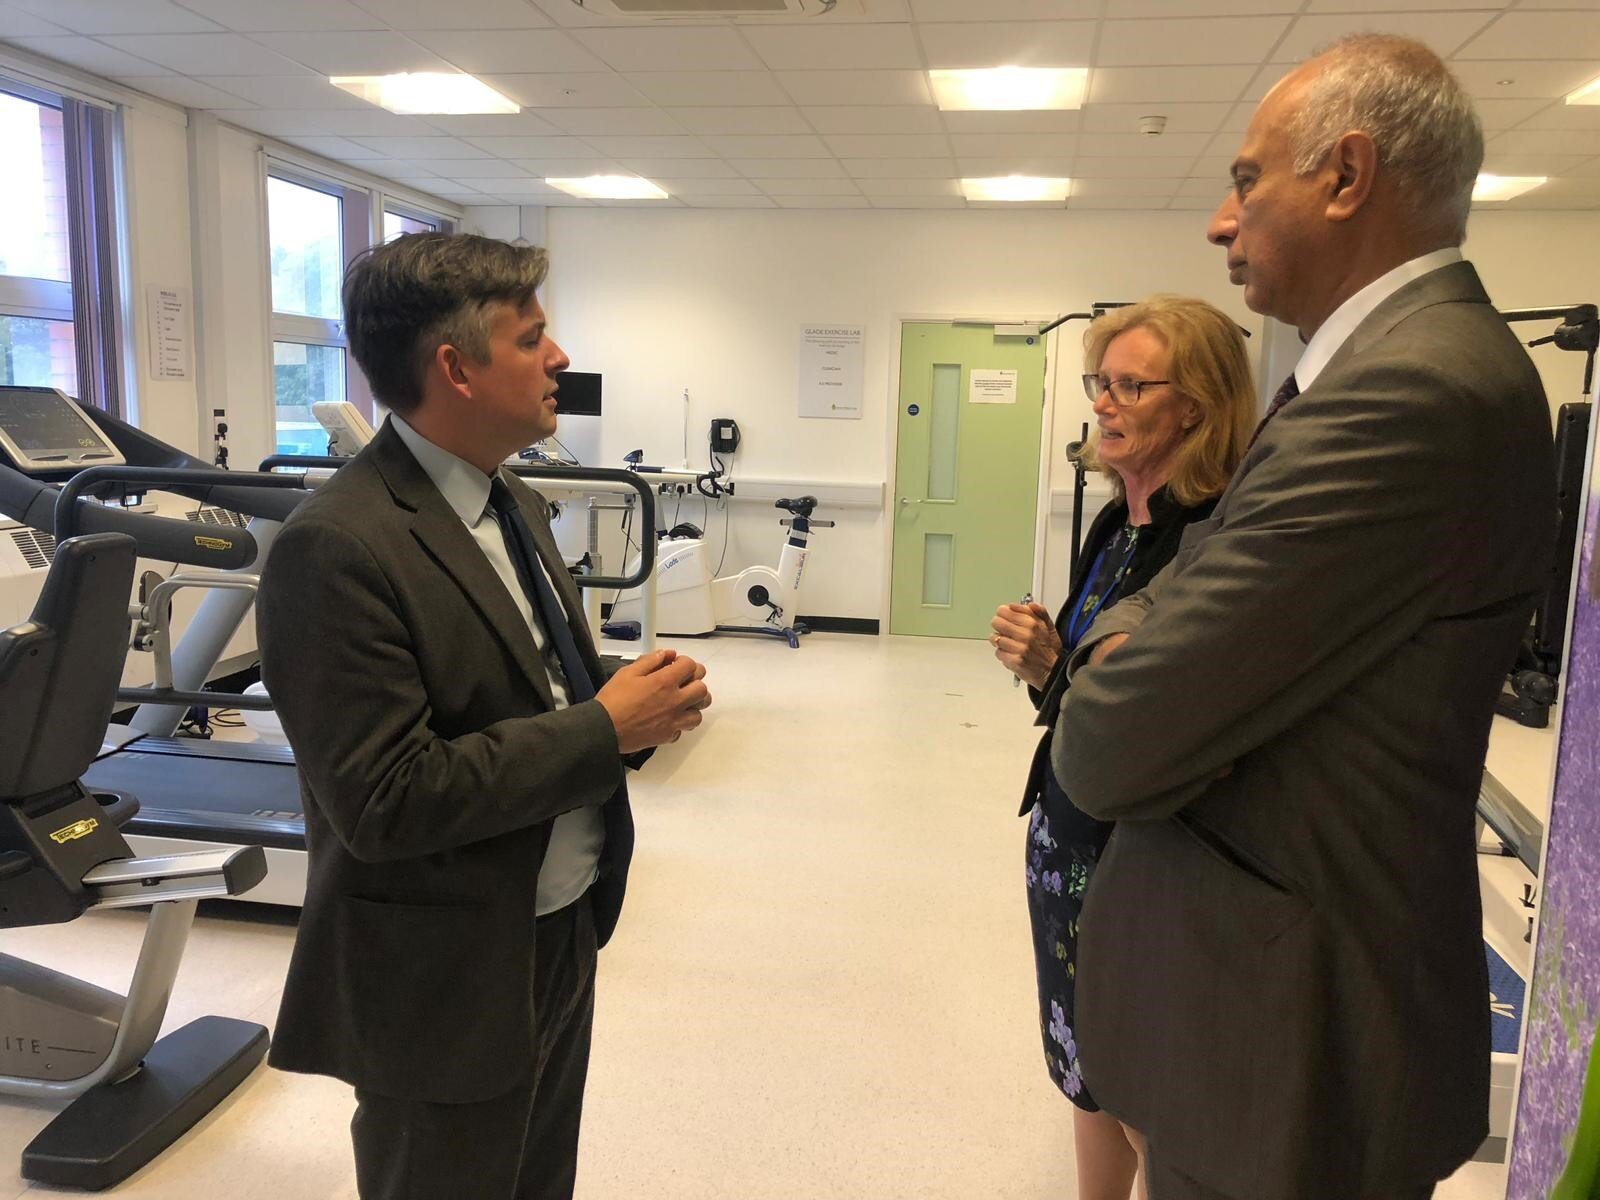 Jon with Professors Melanie Davies and Kamlesh Khunti at Leicester Diabetes Centre - Friday October 4 2019